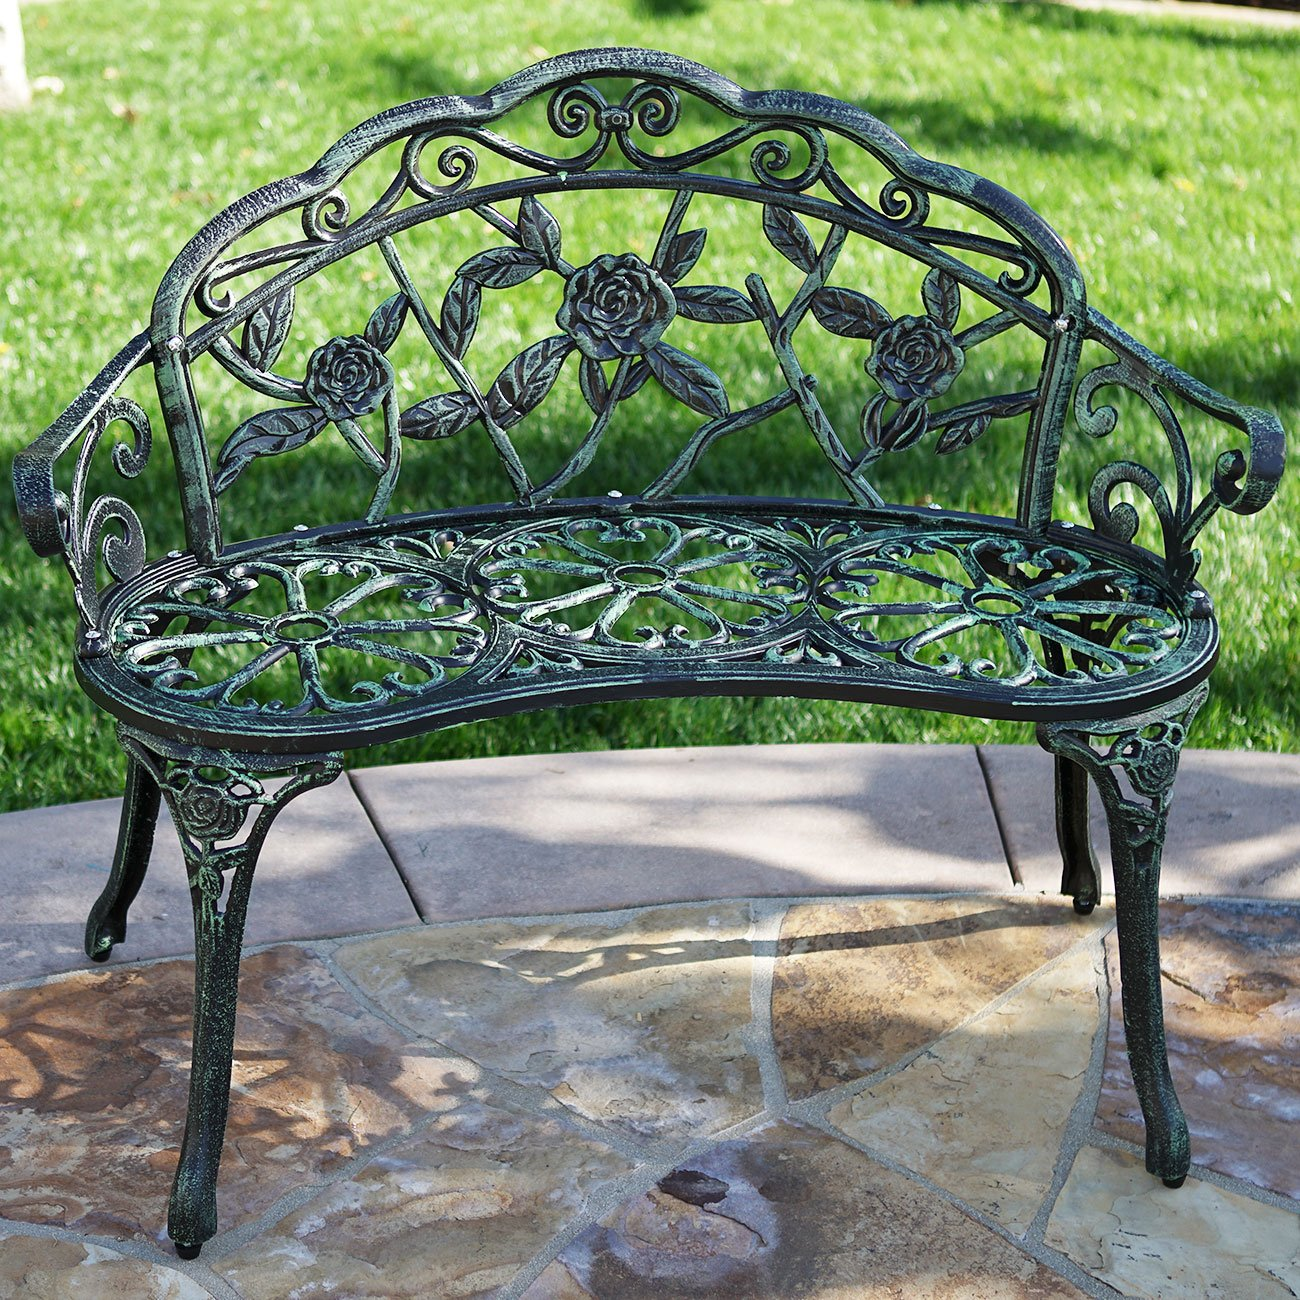 Amazon.com : Belleze Rose Style Park Bench Love Seat Cast Iron Antique  Designed Outdoor Patio Porch Home Pool Garden Backyard Green : Garden &  Outdoor - Amazon.com : Belleze Rose Style Park Bench Love Seat Cast Iron